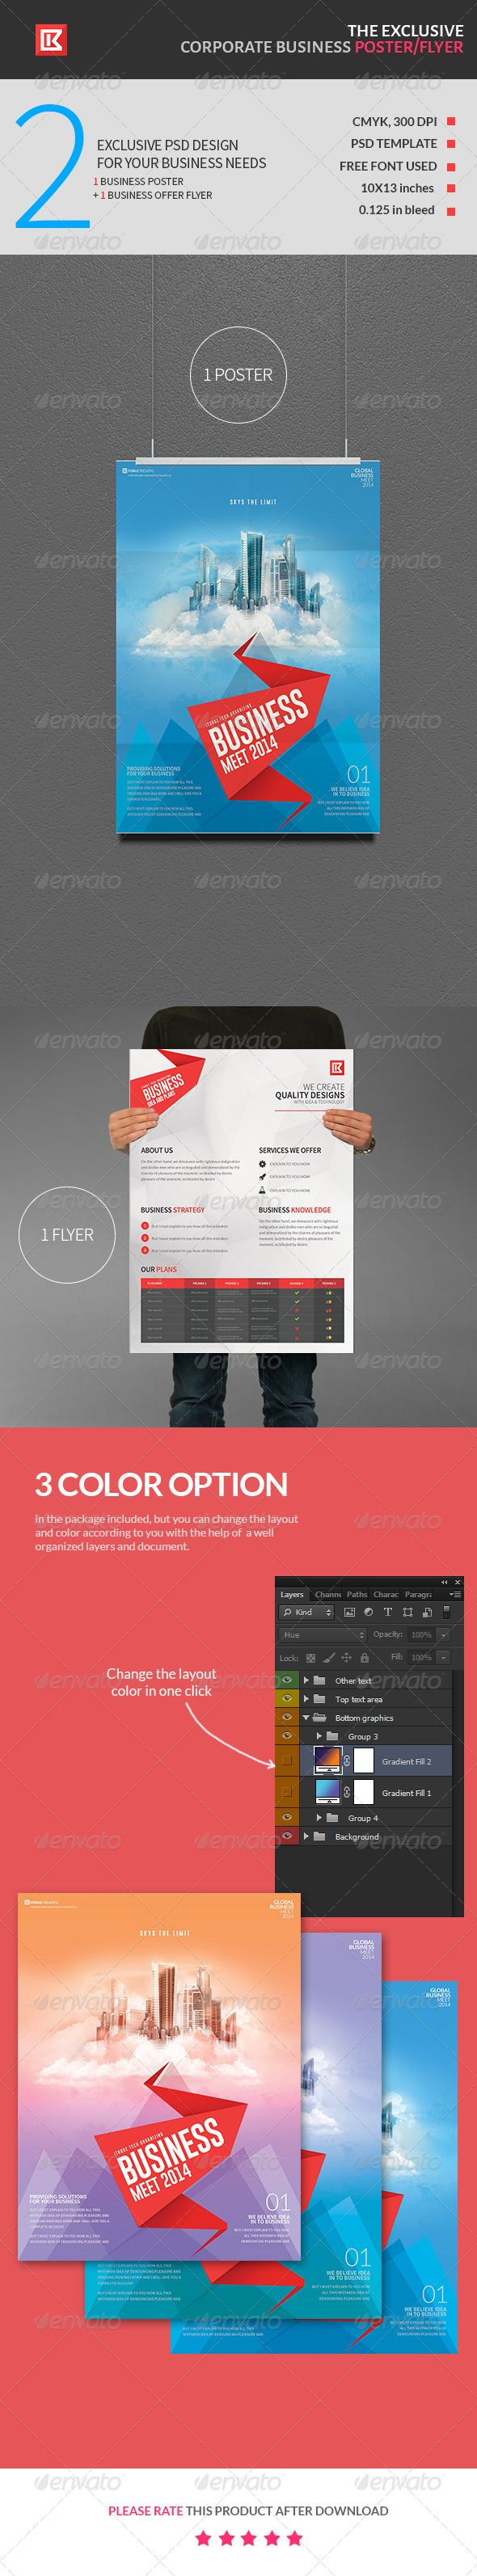 1 color poster design - Exclusive Corporate Business Poster And Flyer Ad Advertisement Business Company Corporate